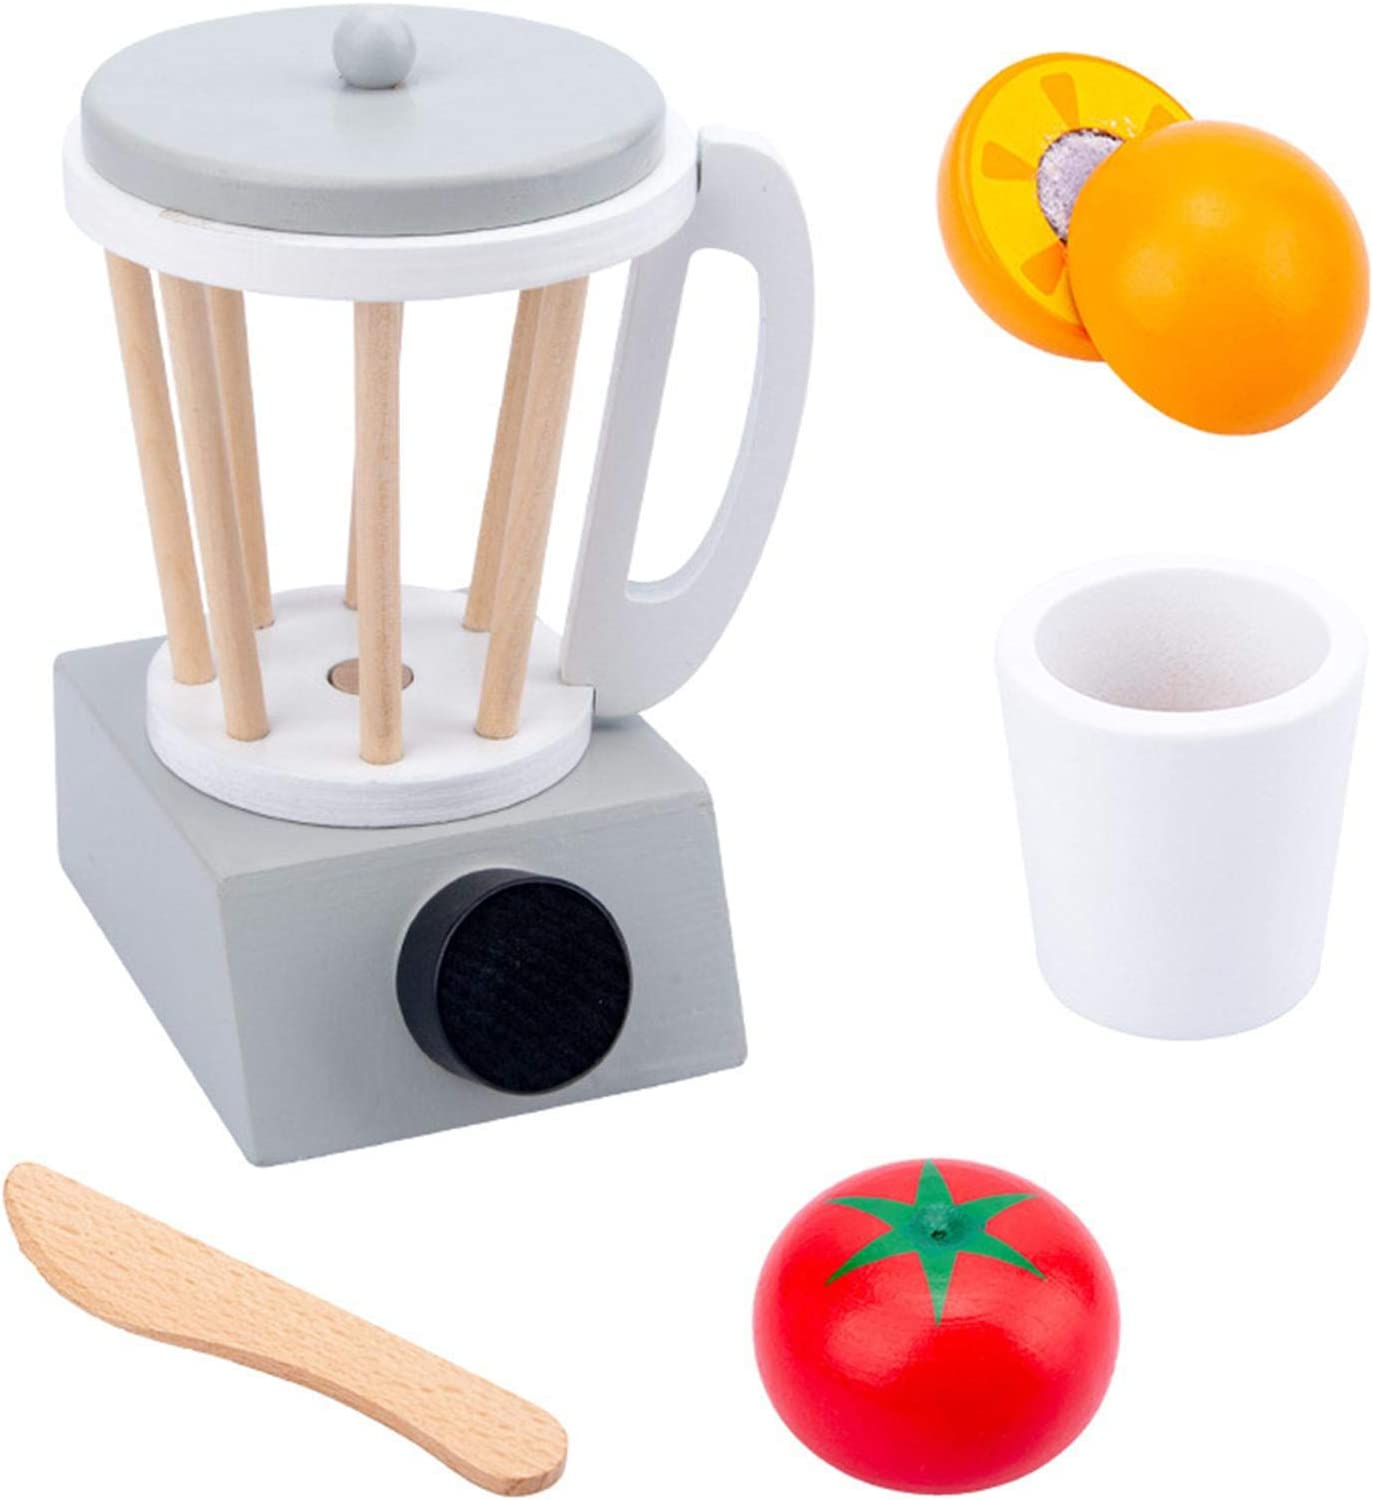 YYDS Pop-Up Toaster Play Set Children's Playhouse, Coffee Pretend Play Children Toy, Wooden Pretend Play Kitchen Set with Accessories